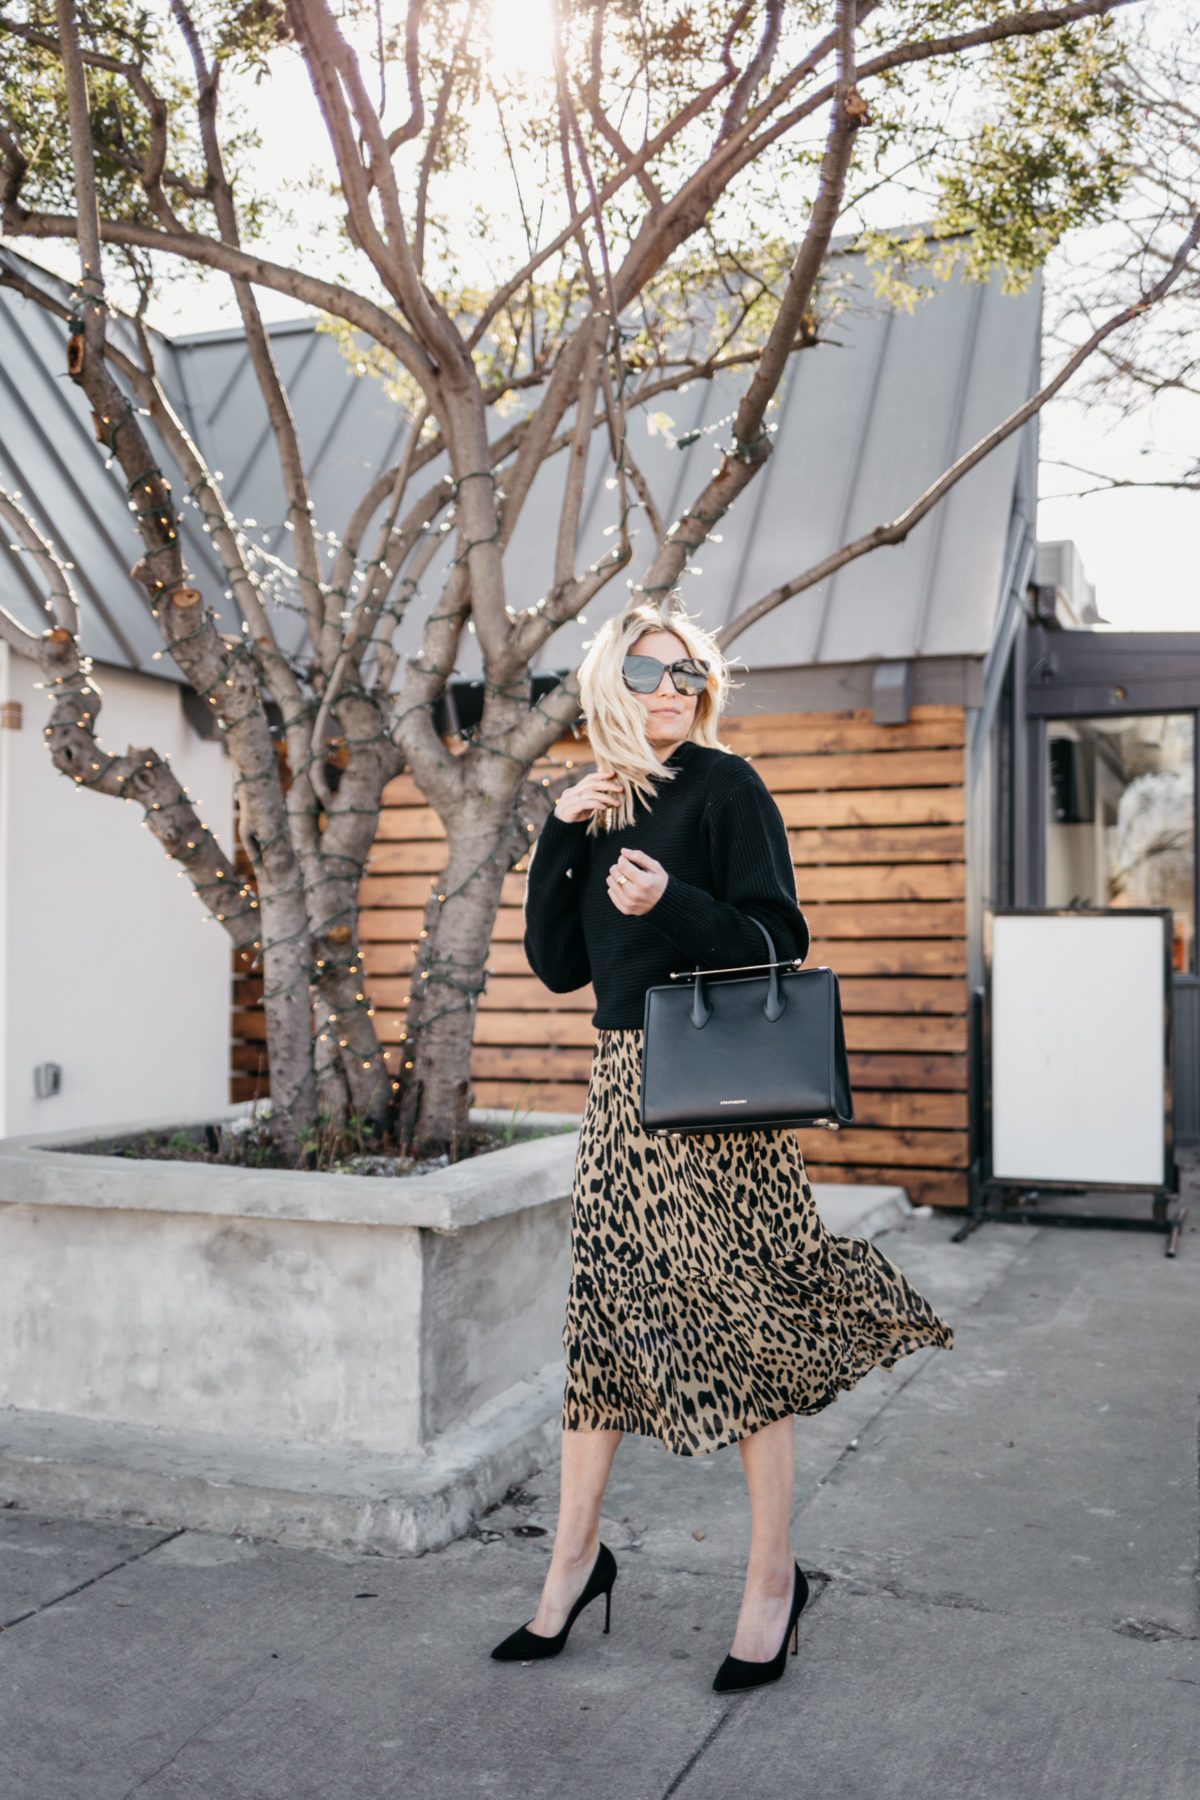 WAYS TO WEAR A LEOPARD DRESS AT WORK